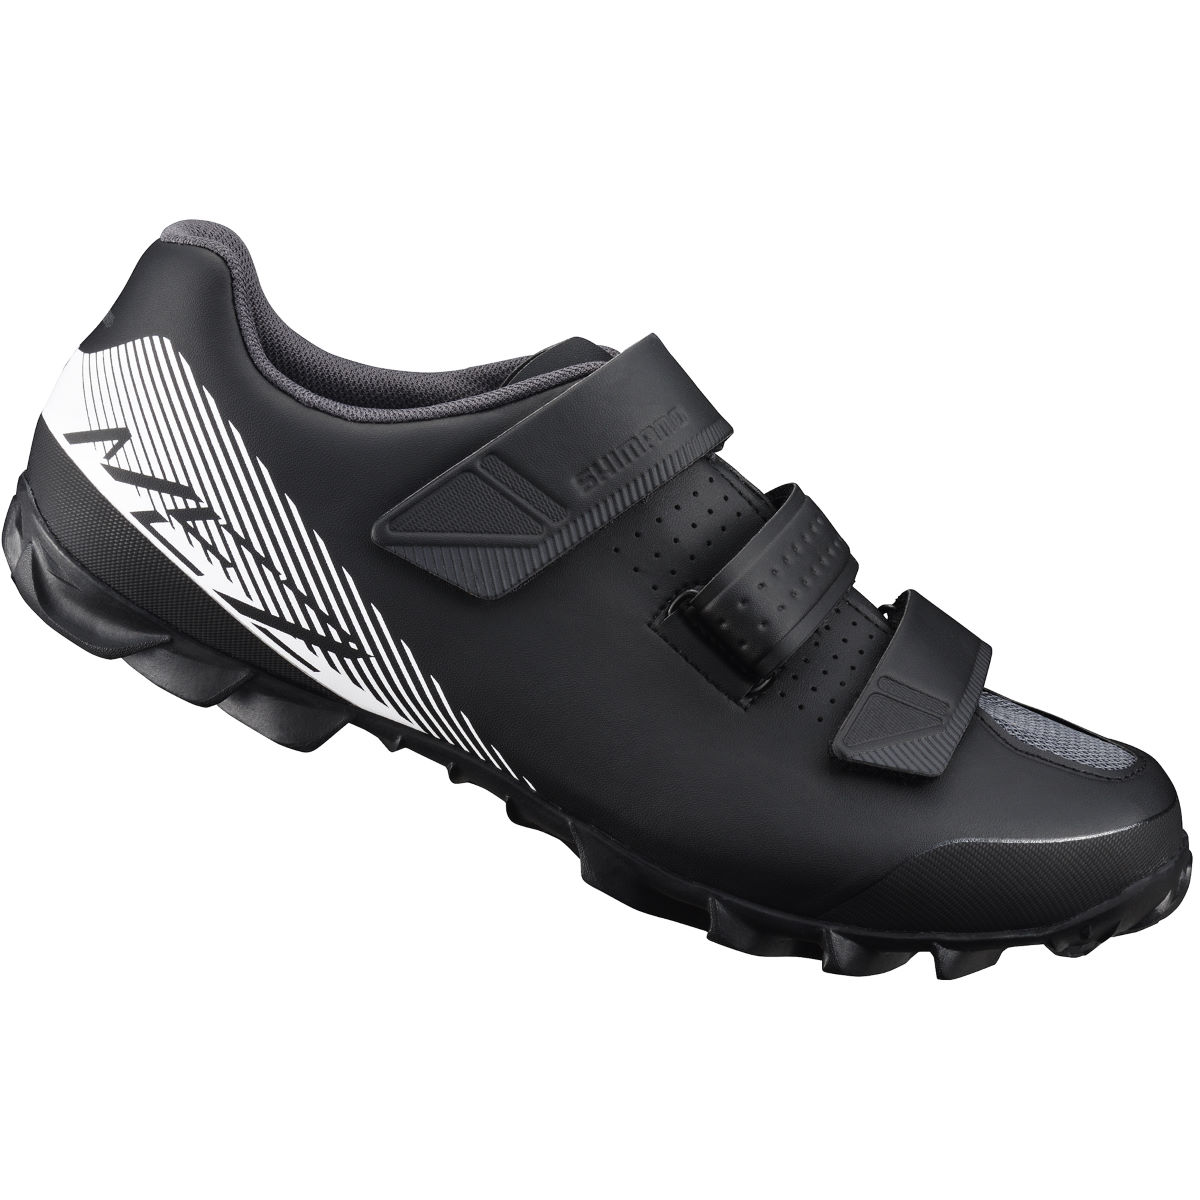 Shimano ME2 SPD Mountain Bike Shoes   Cycling Shoes